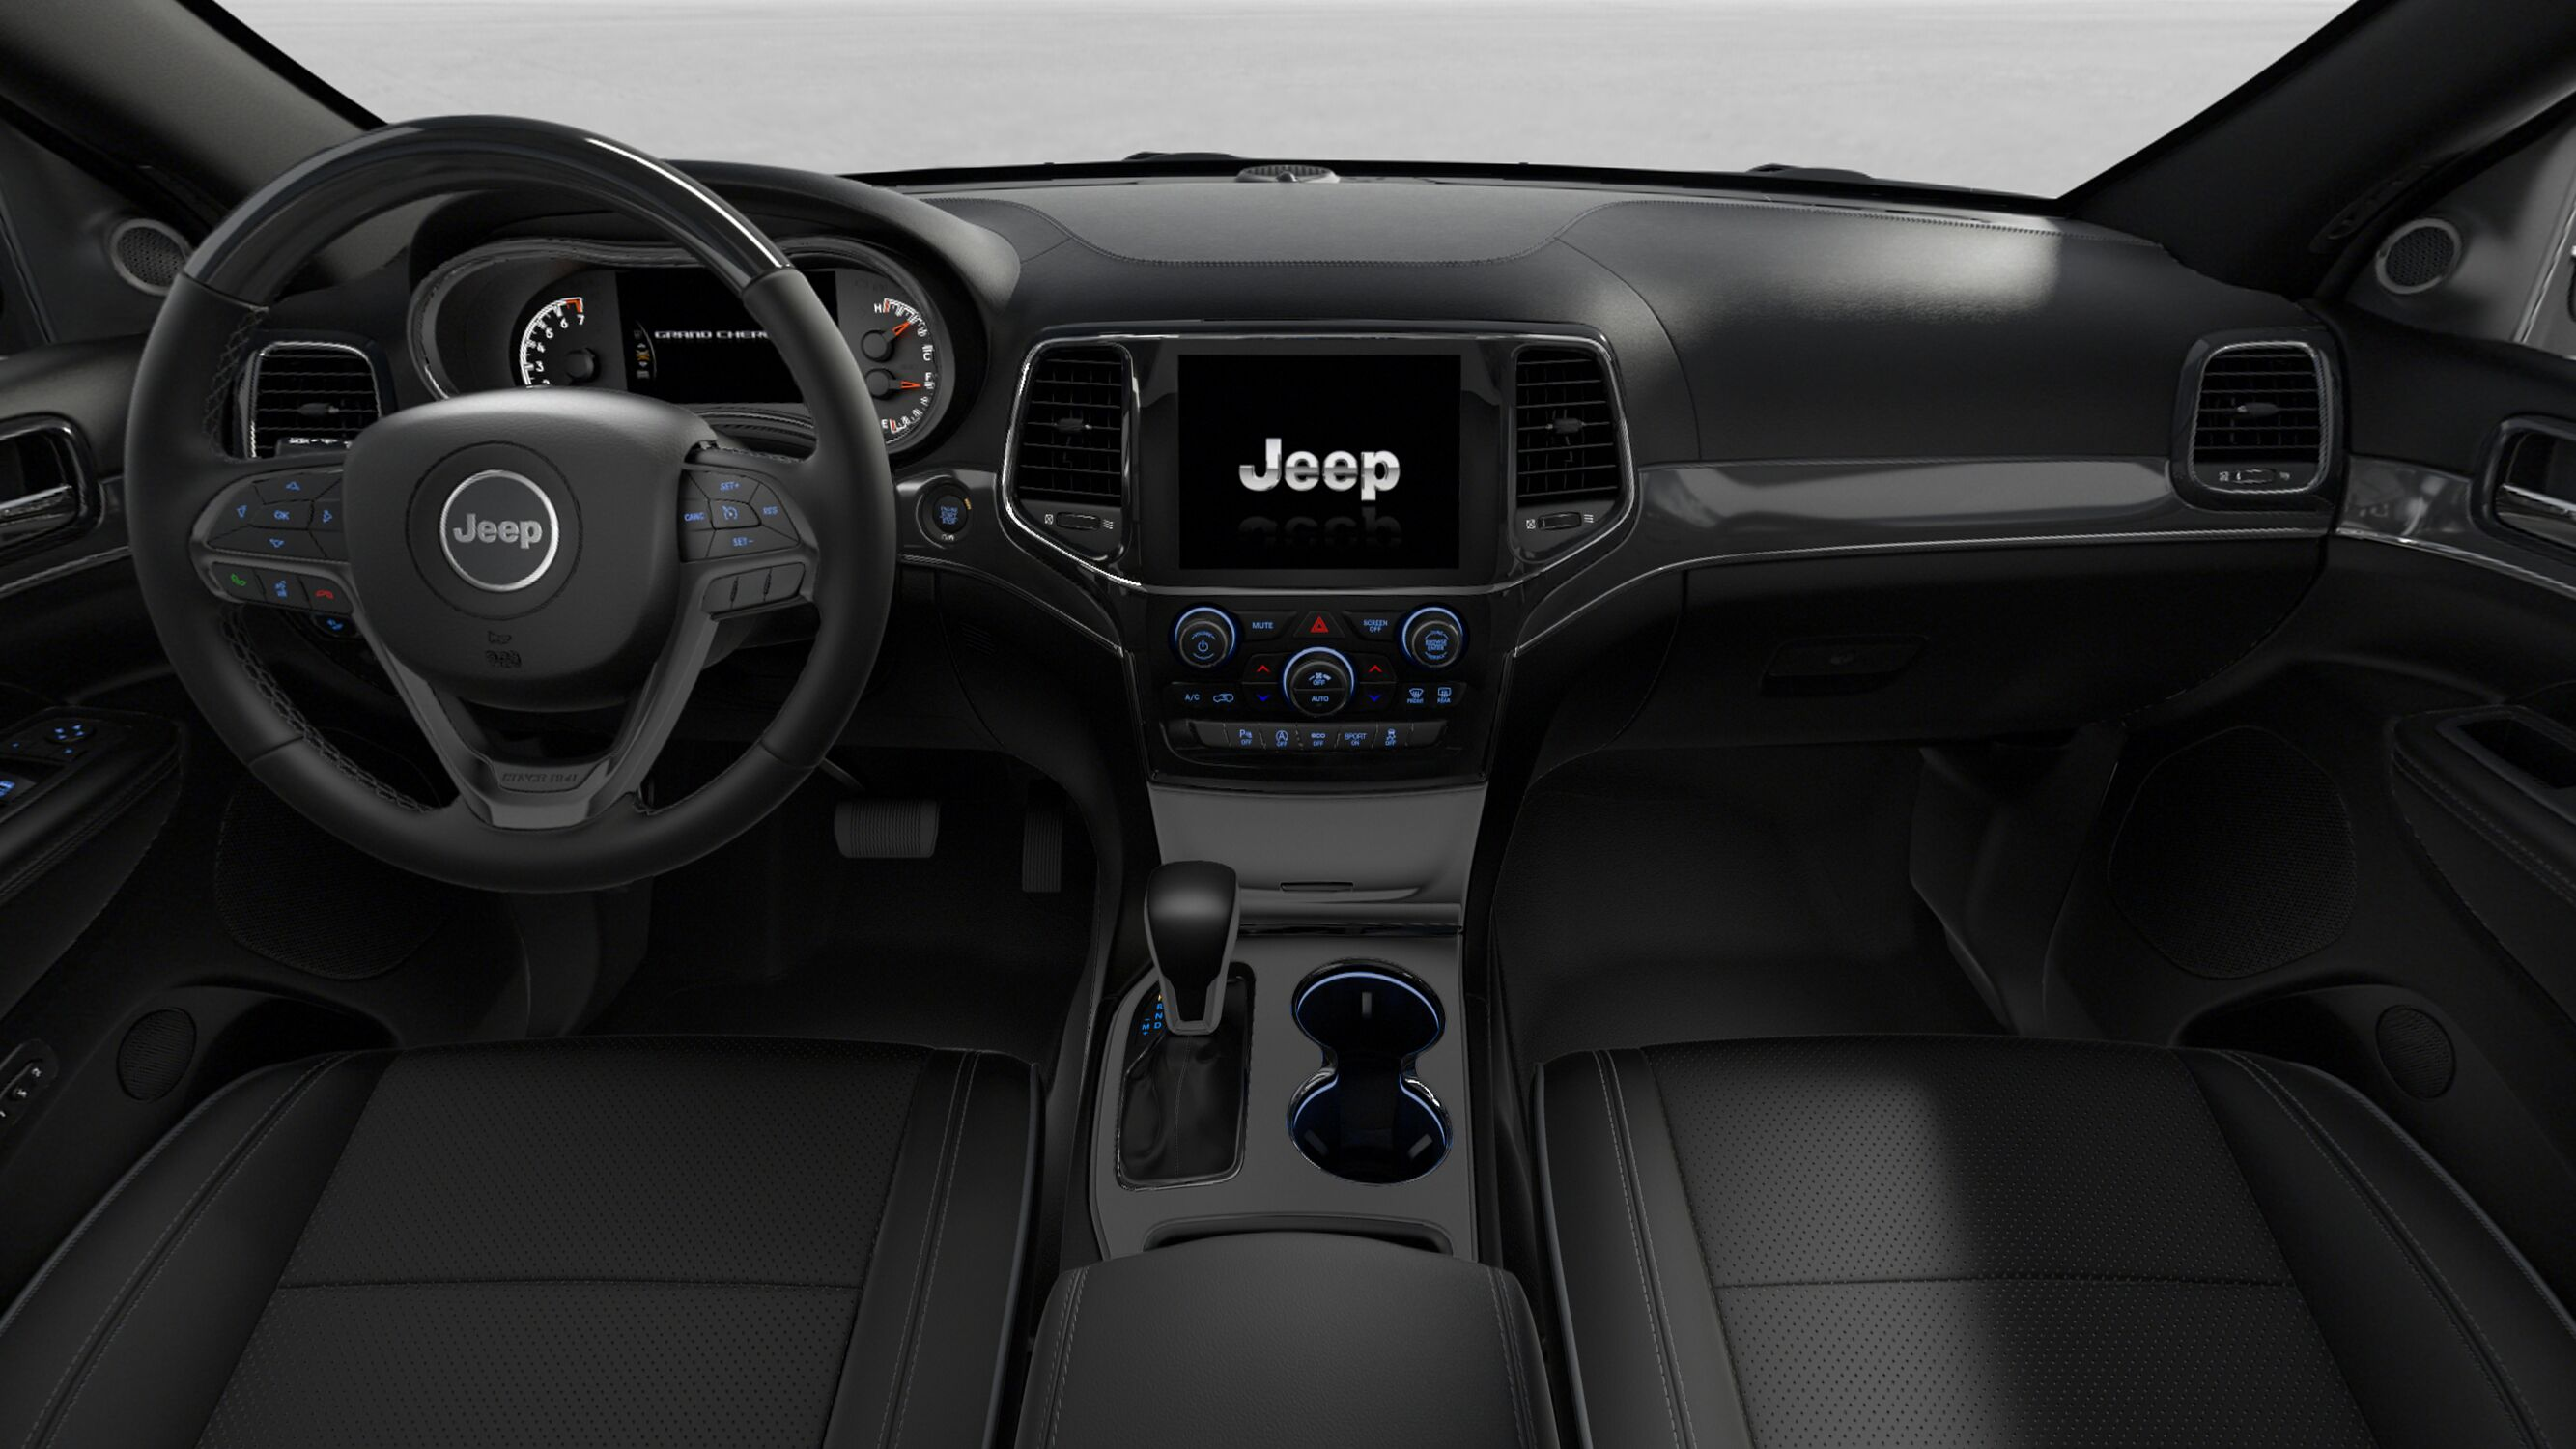 2019 Jeep Grand Cherokee Overland Front Interior Dashboard